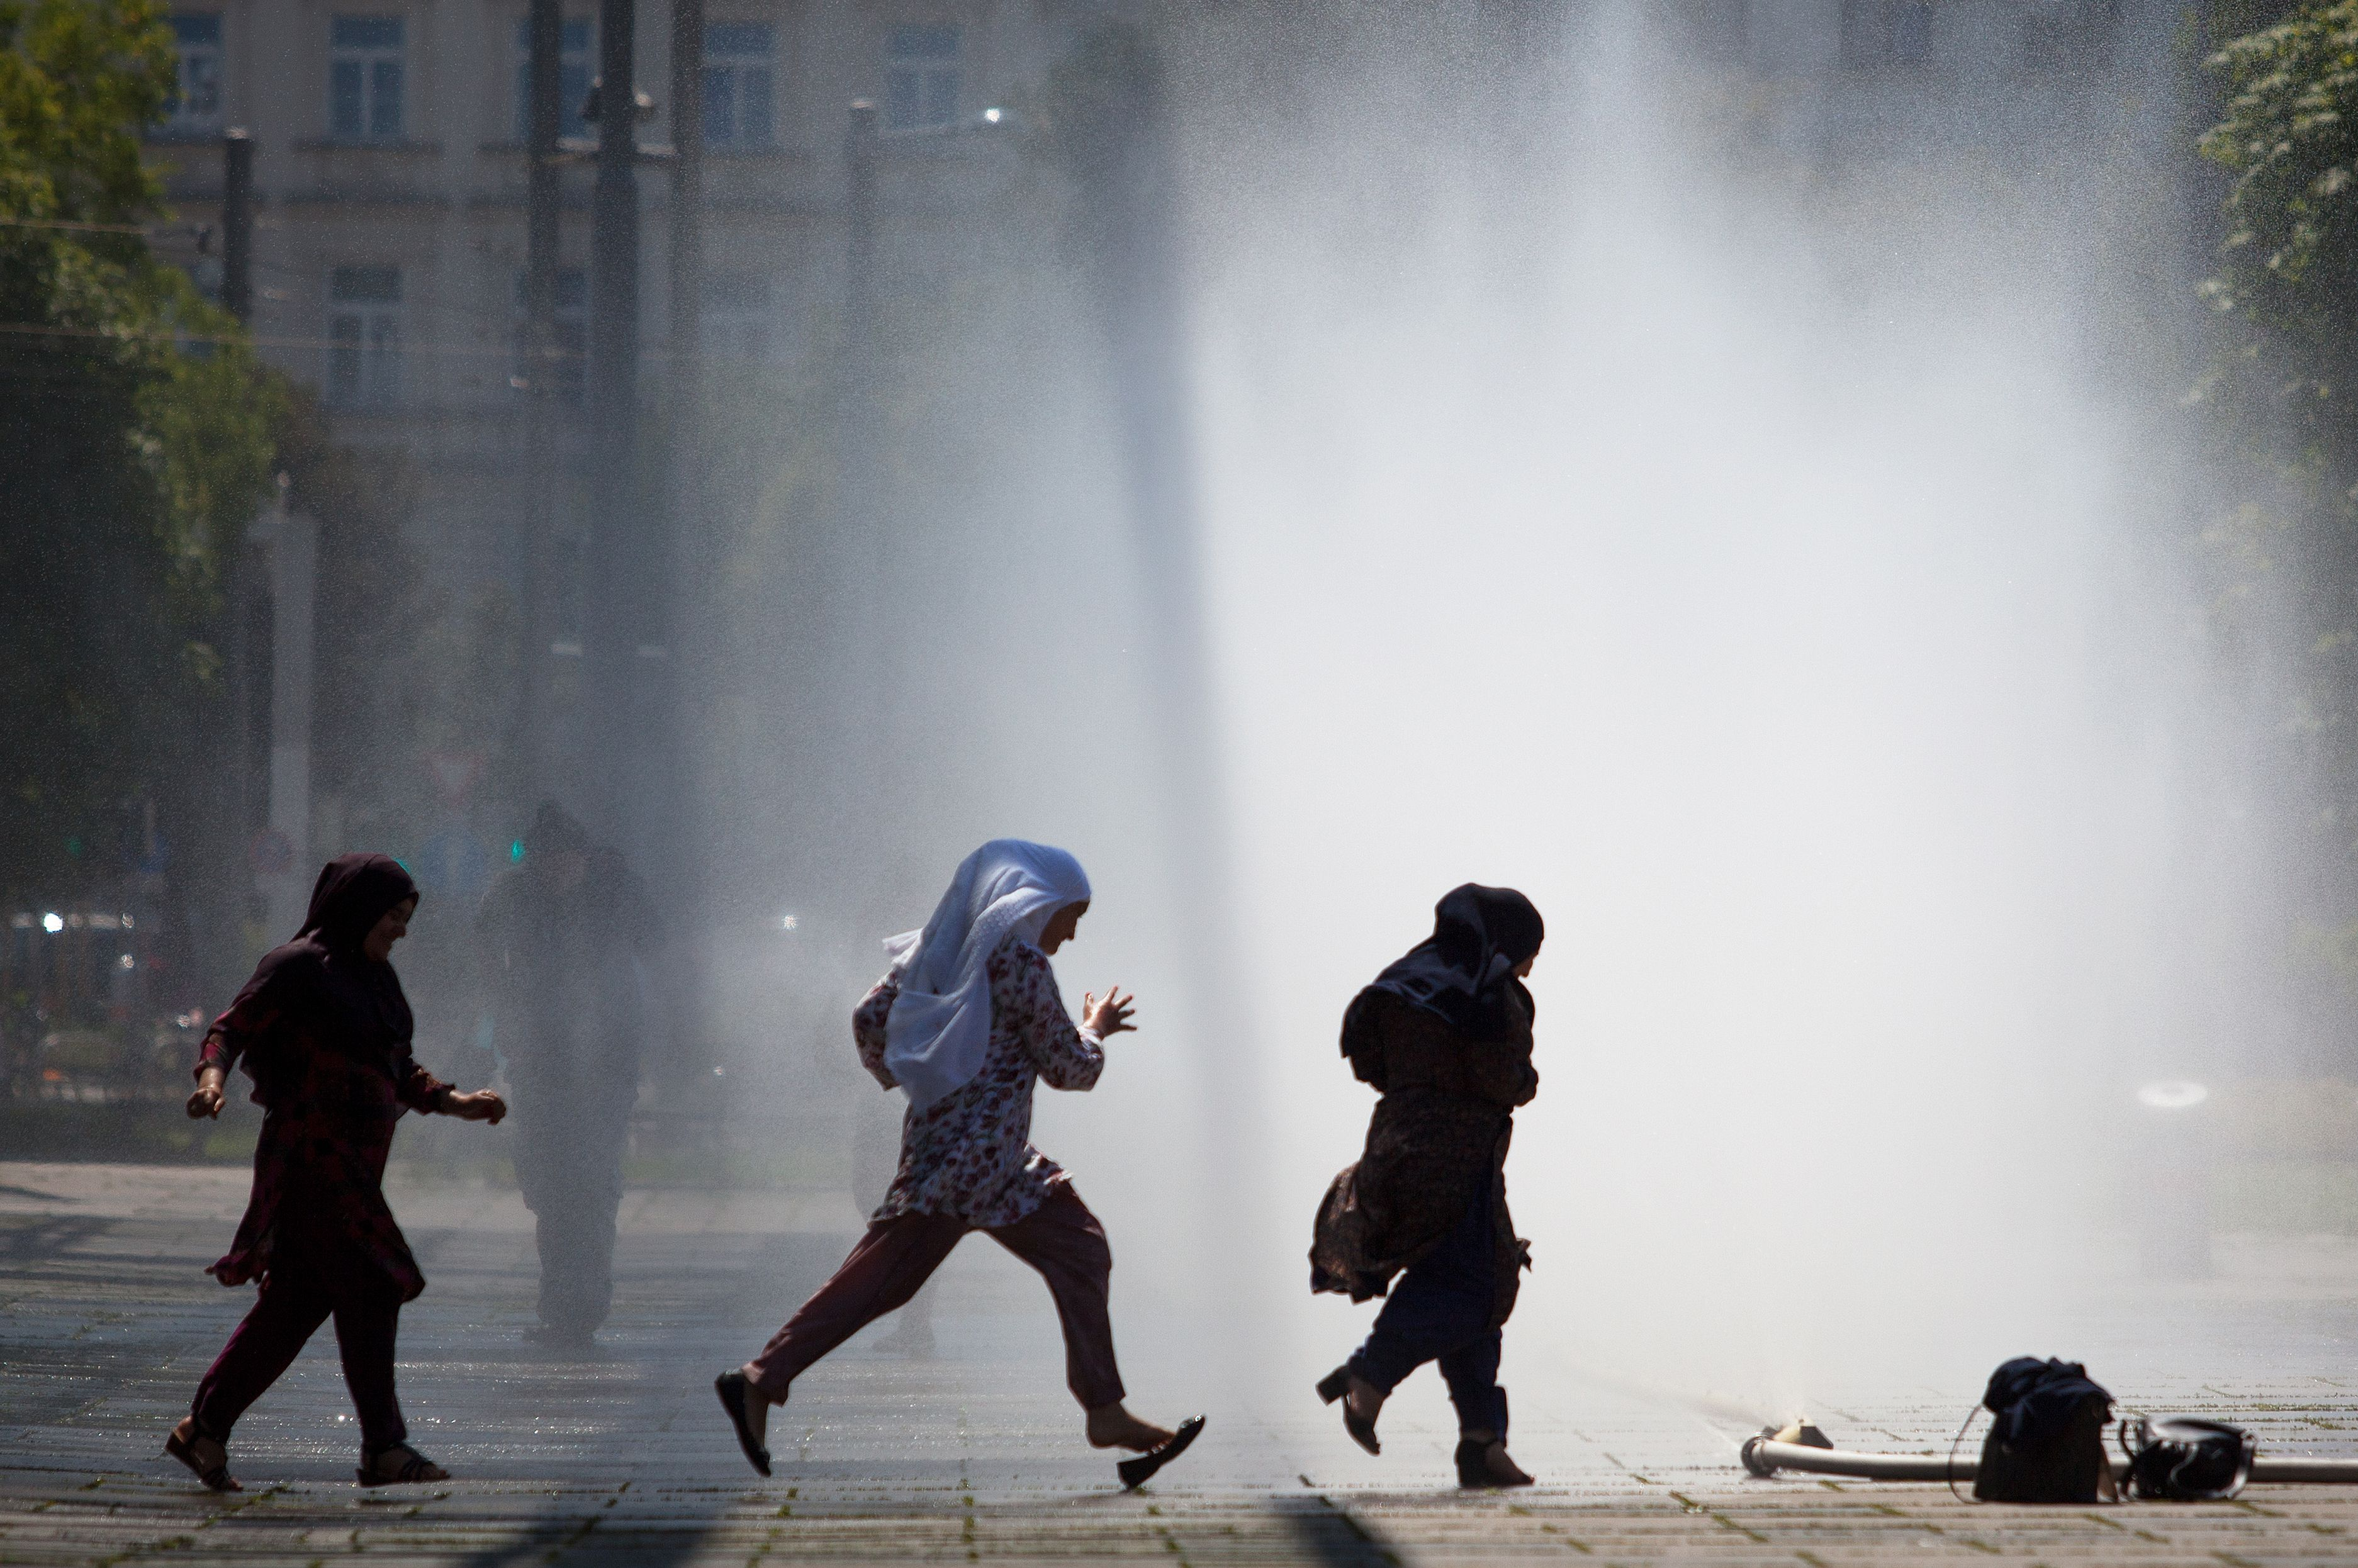 Women run through water sprayed from a pipe at Praterstern Square in Vienna on July 25, 2019.